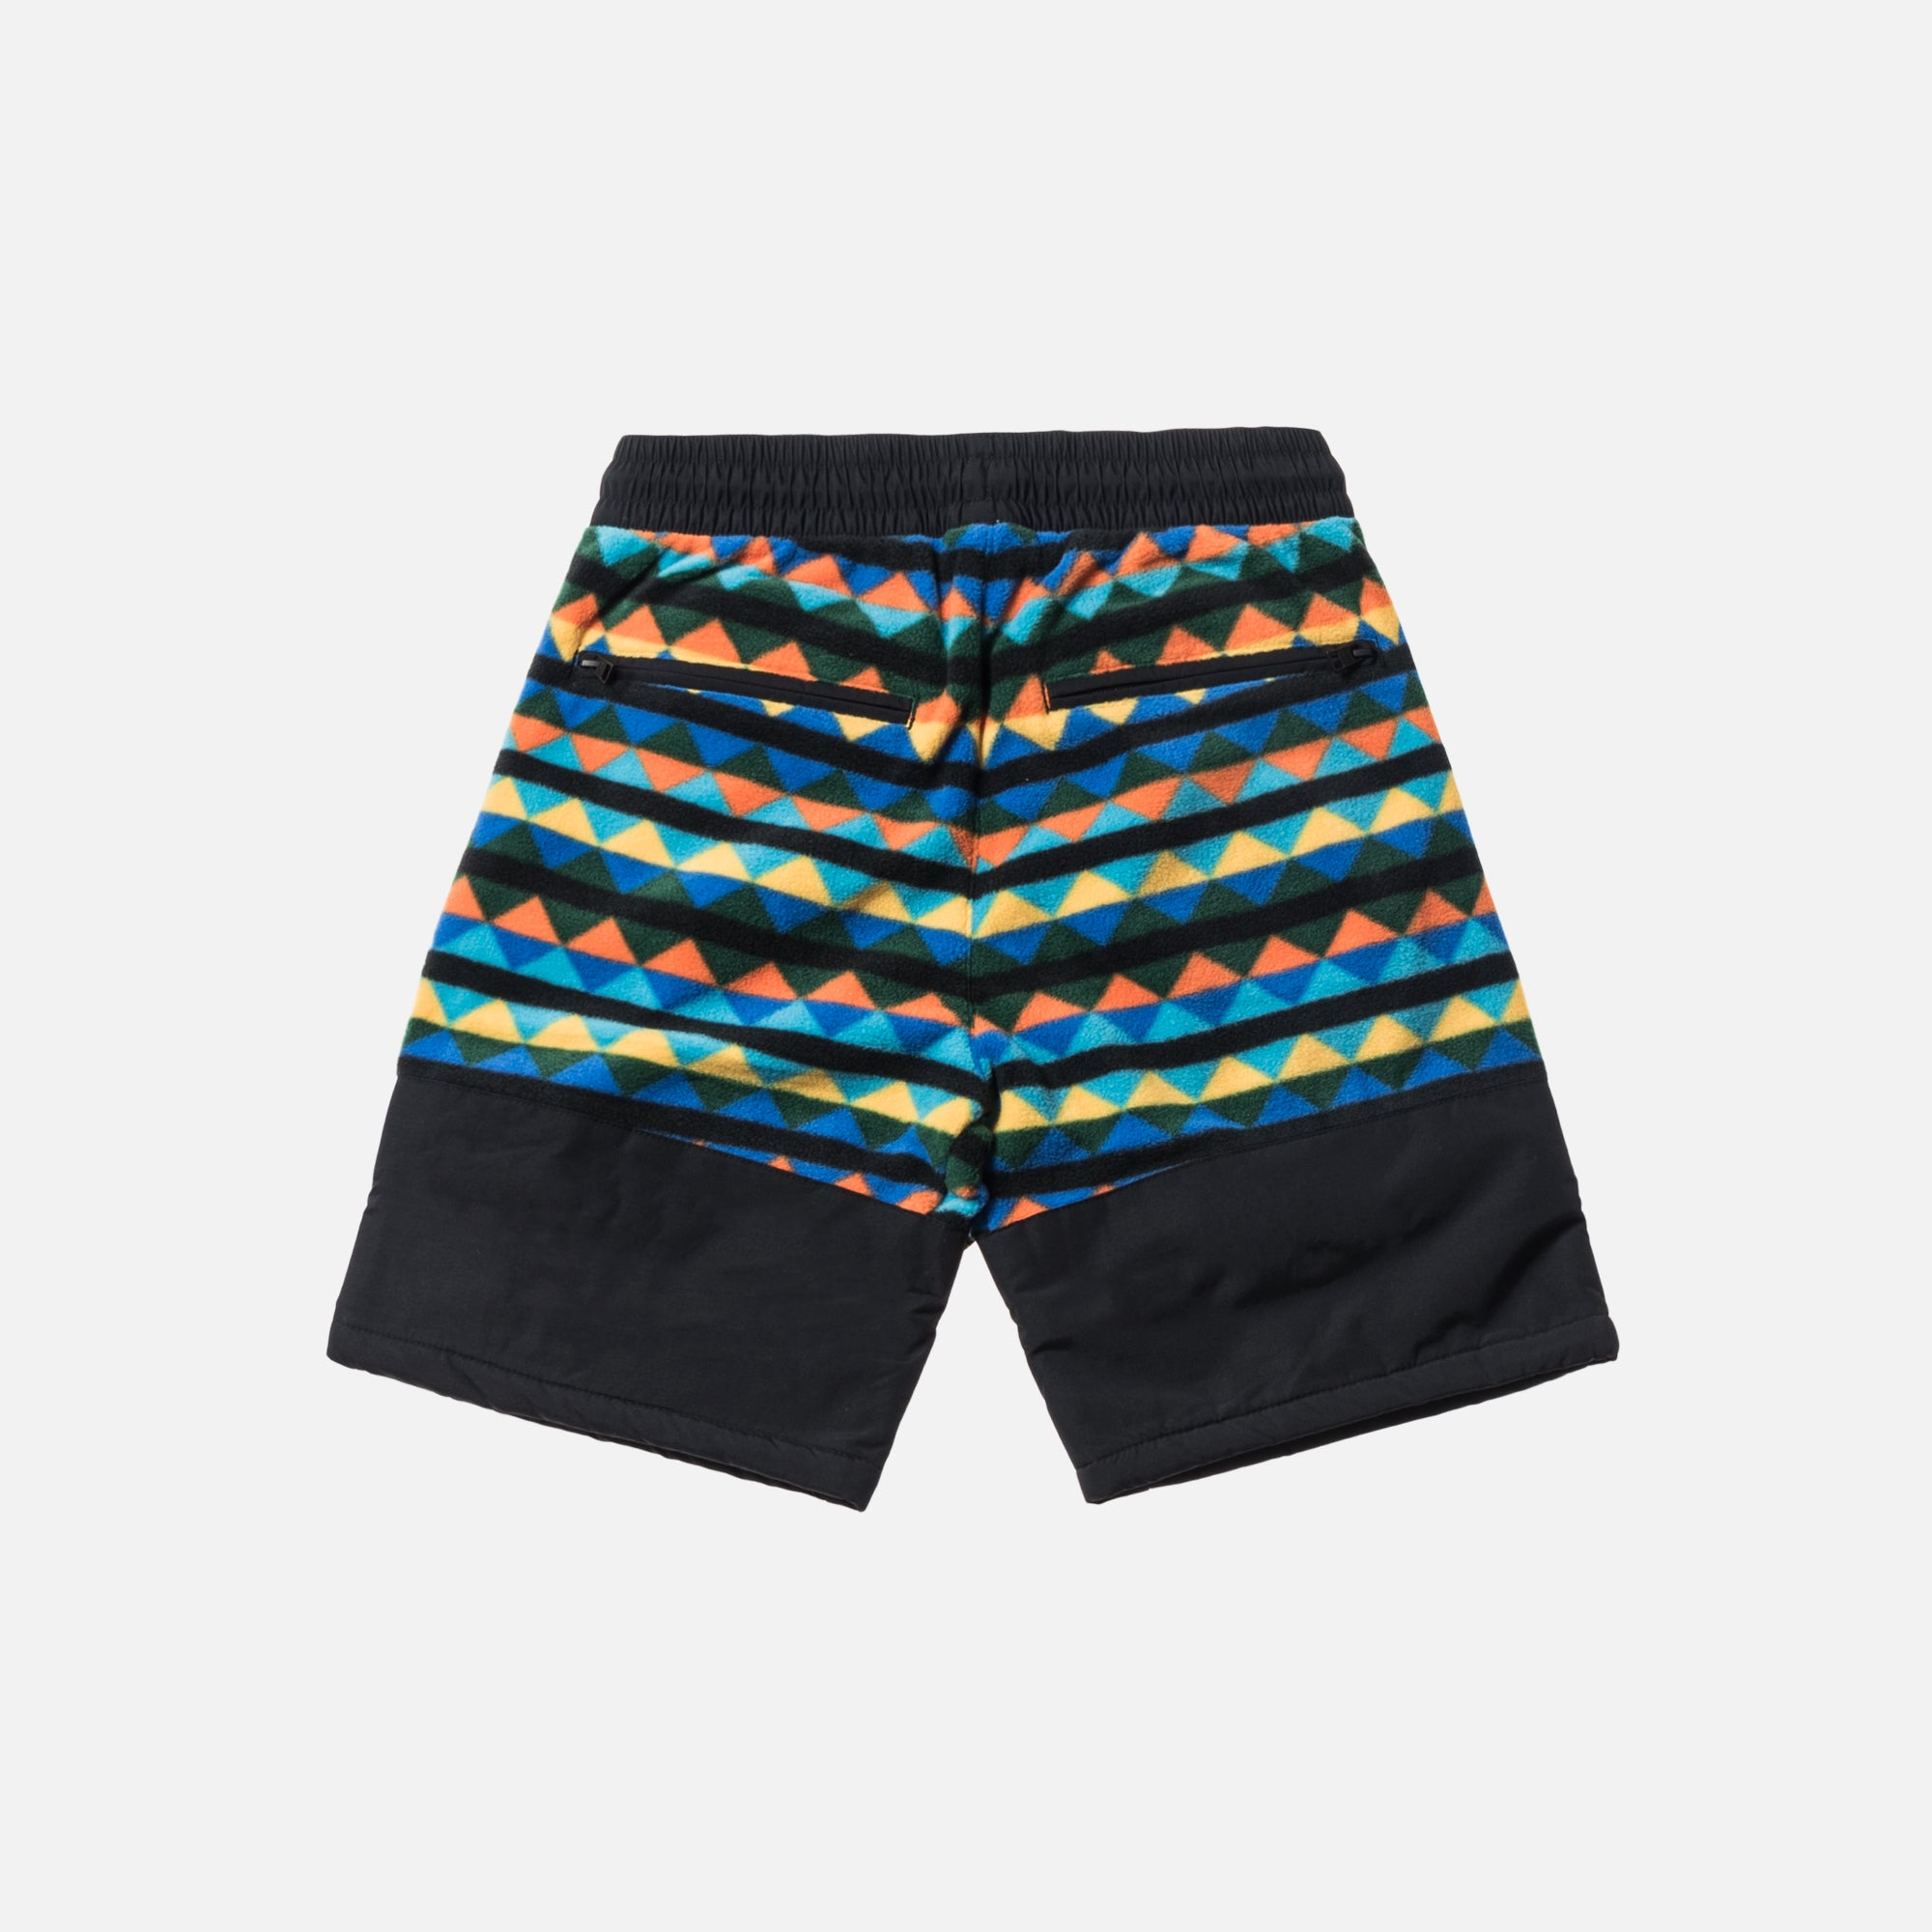 Kith x Columbia Powder Keg Fleece Short - Exploration